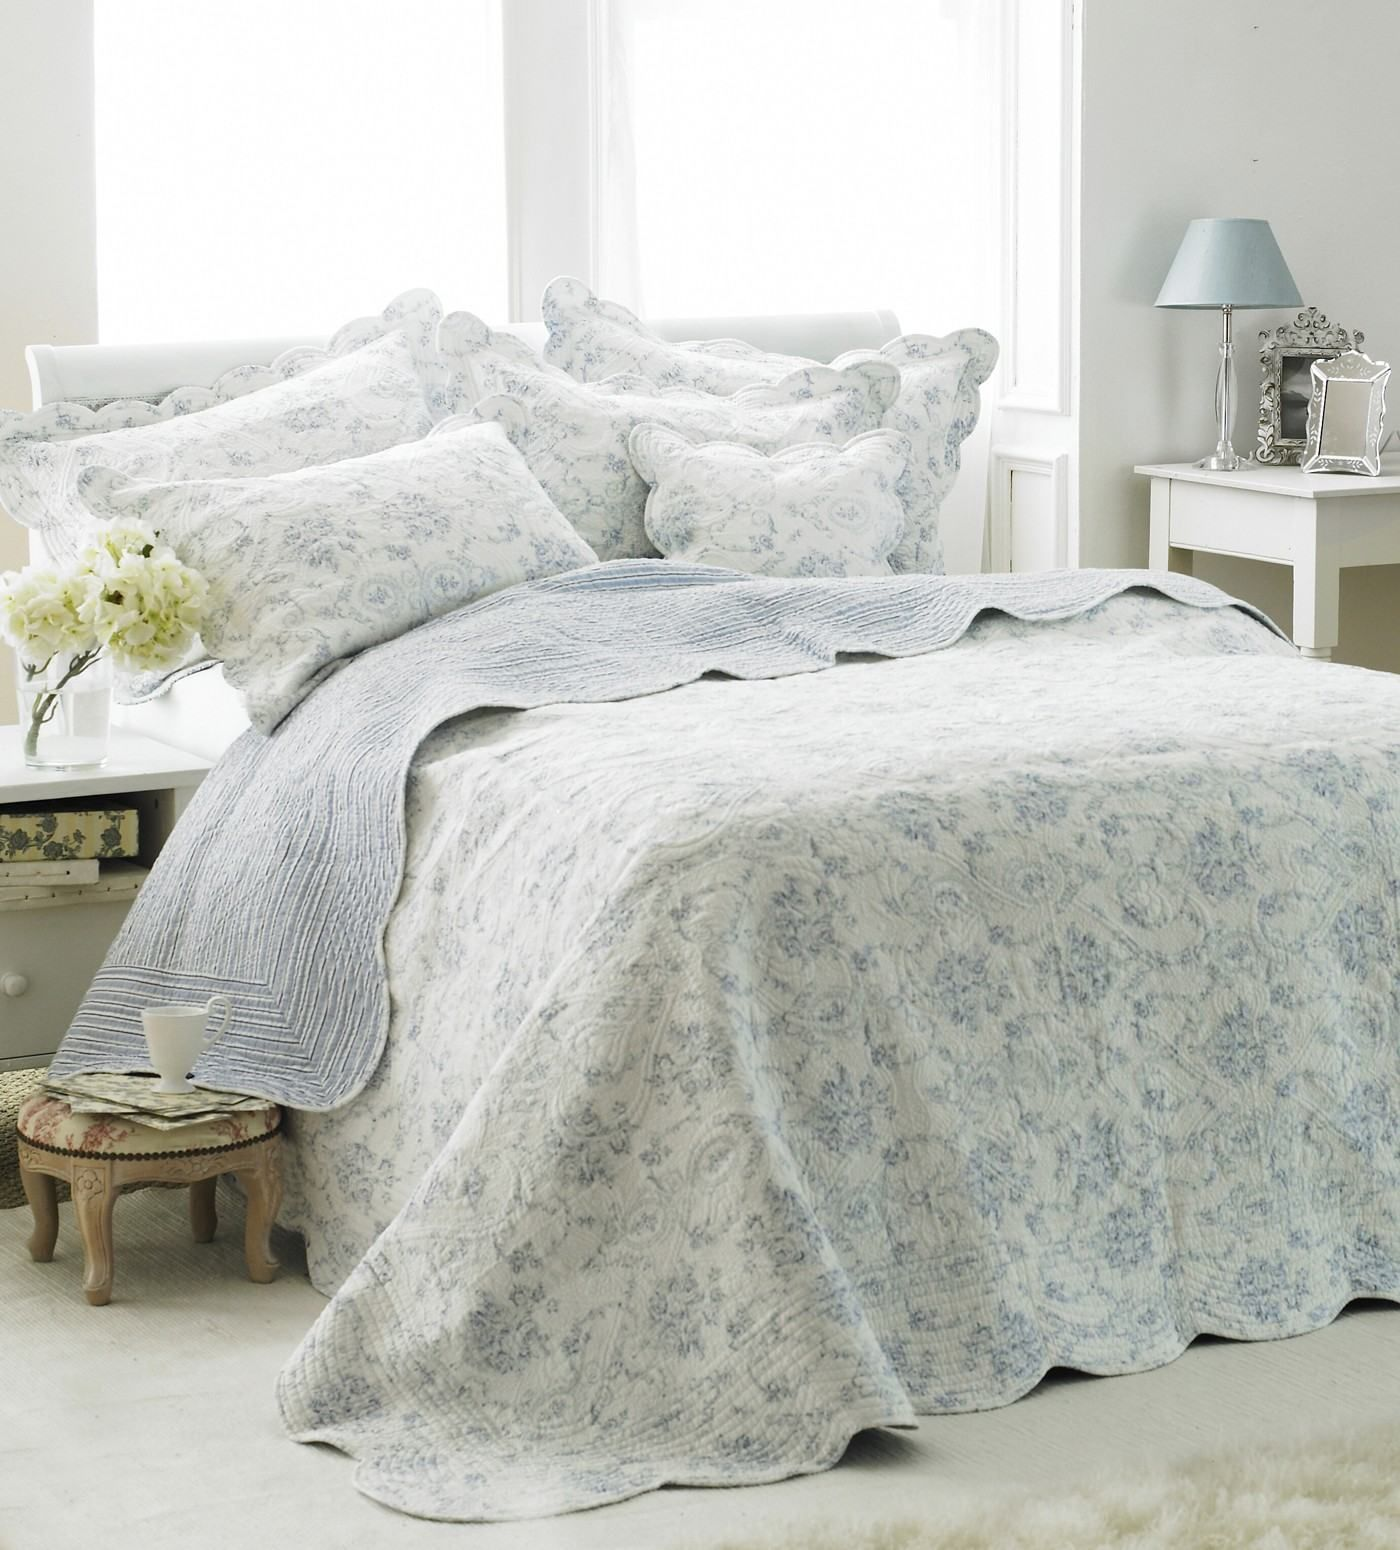 White Bedspread 100 Cotton Quilted Bed